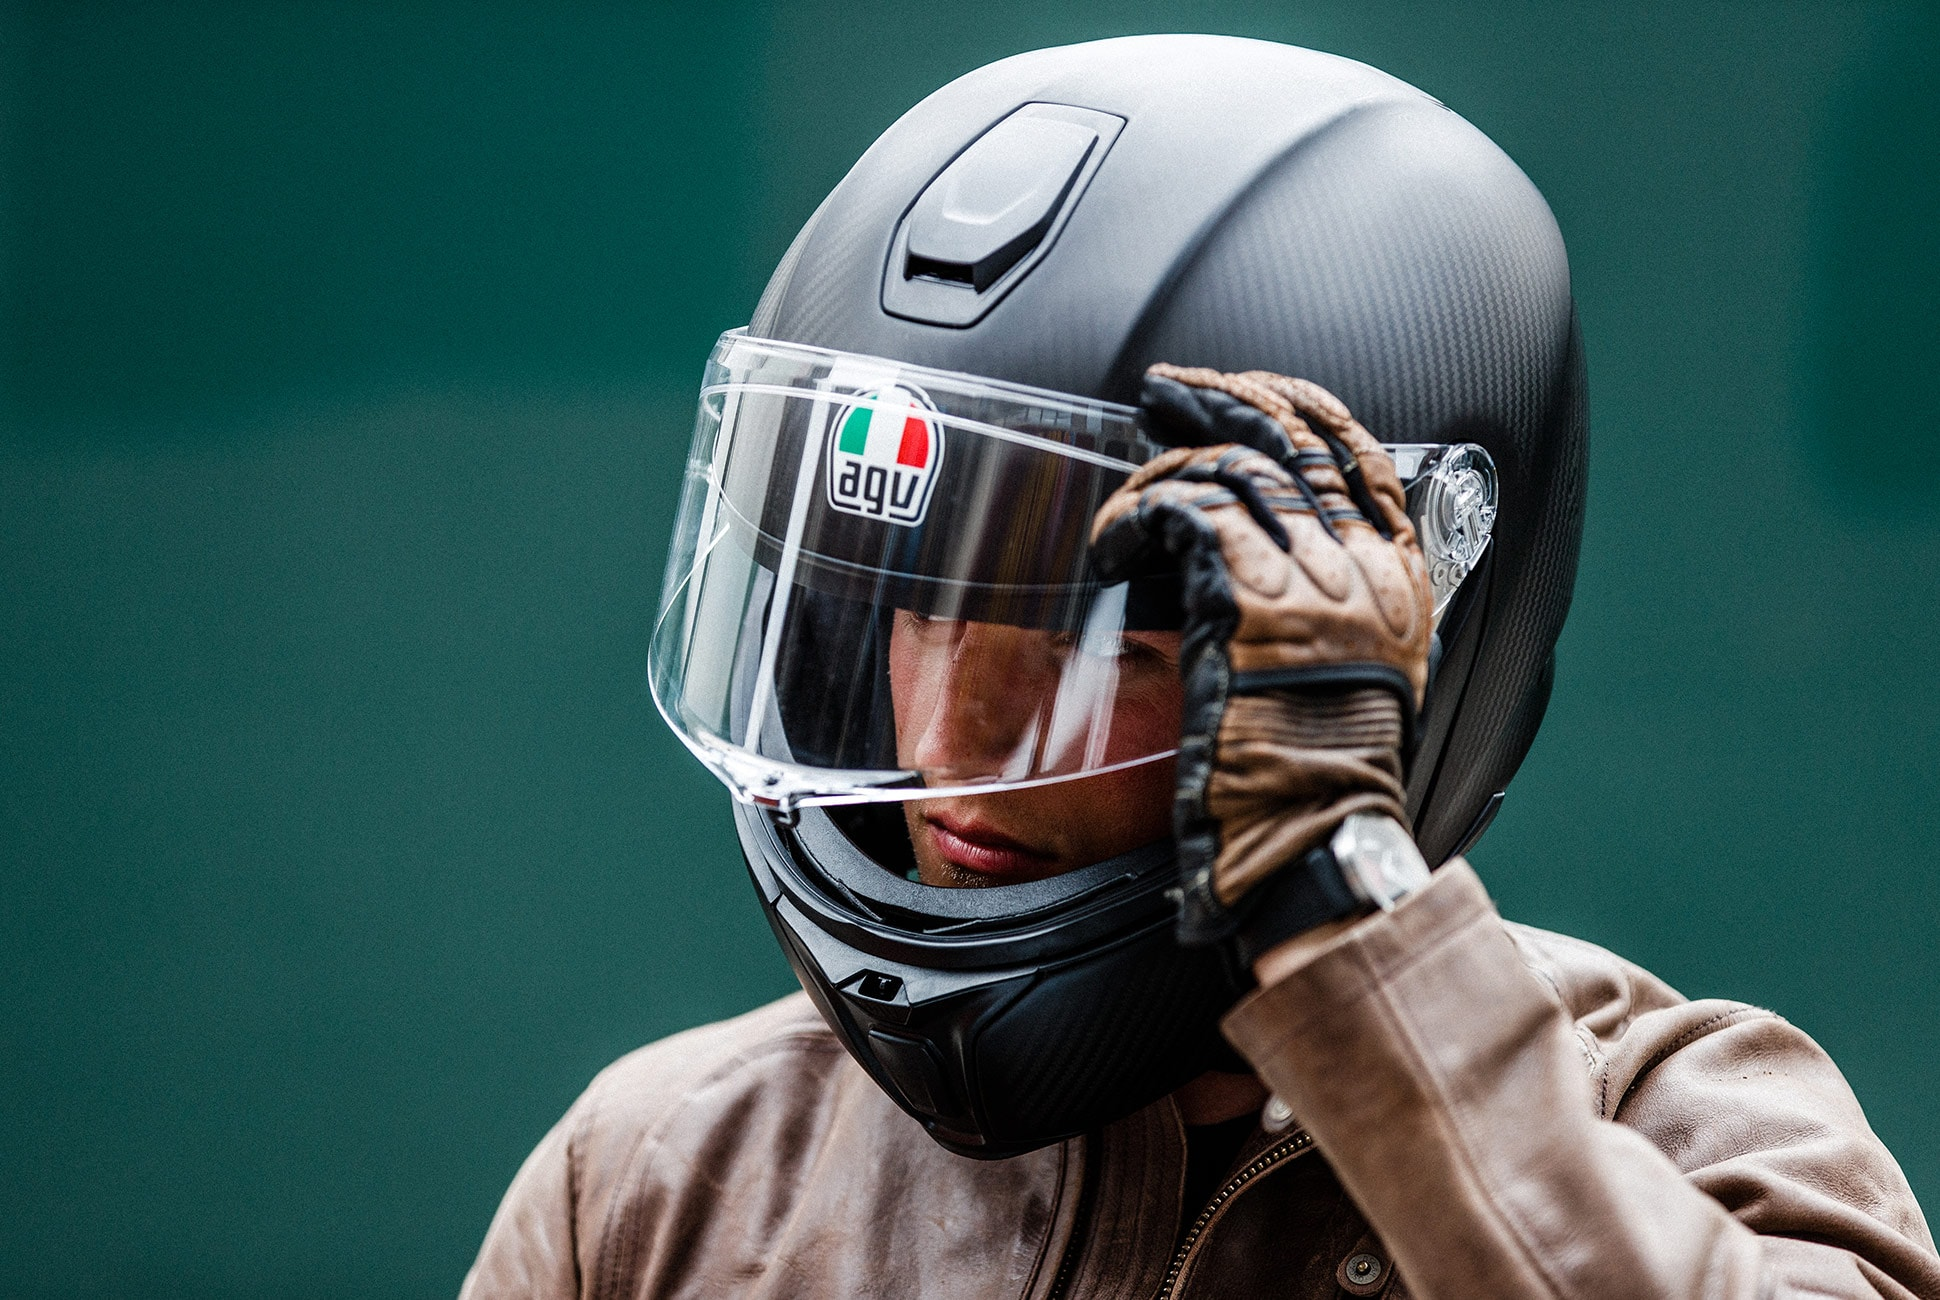 AGV-Sportmodular-Carbon-Helmet-Review-gear-patrol-lead-full